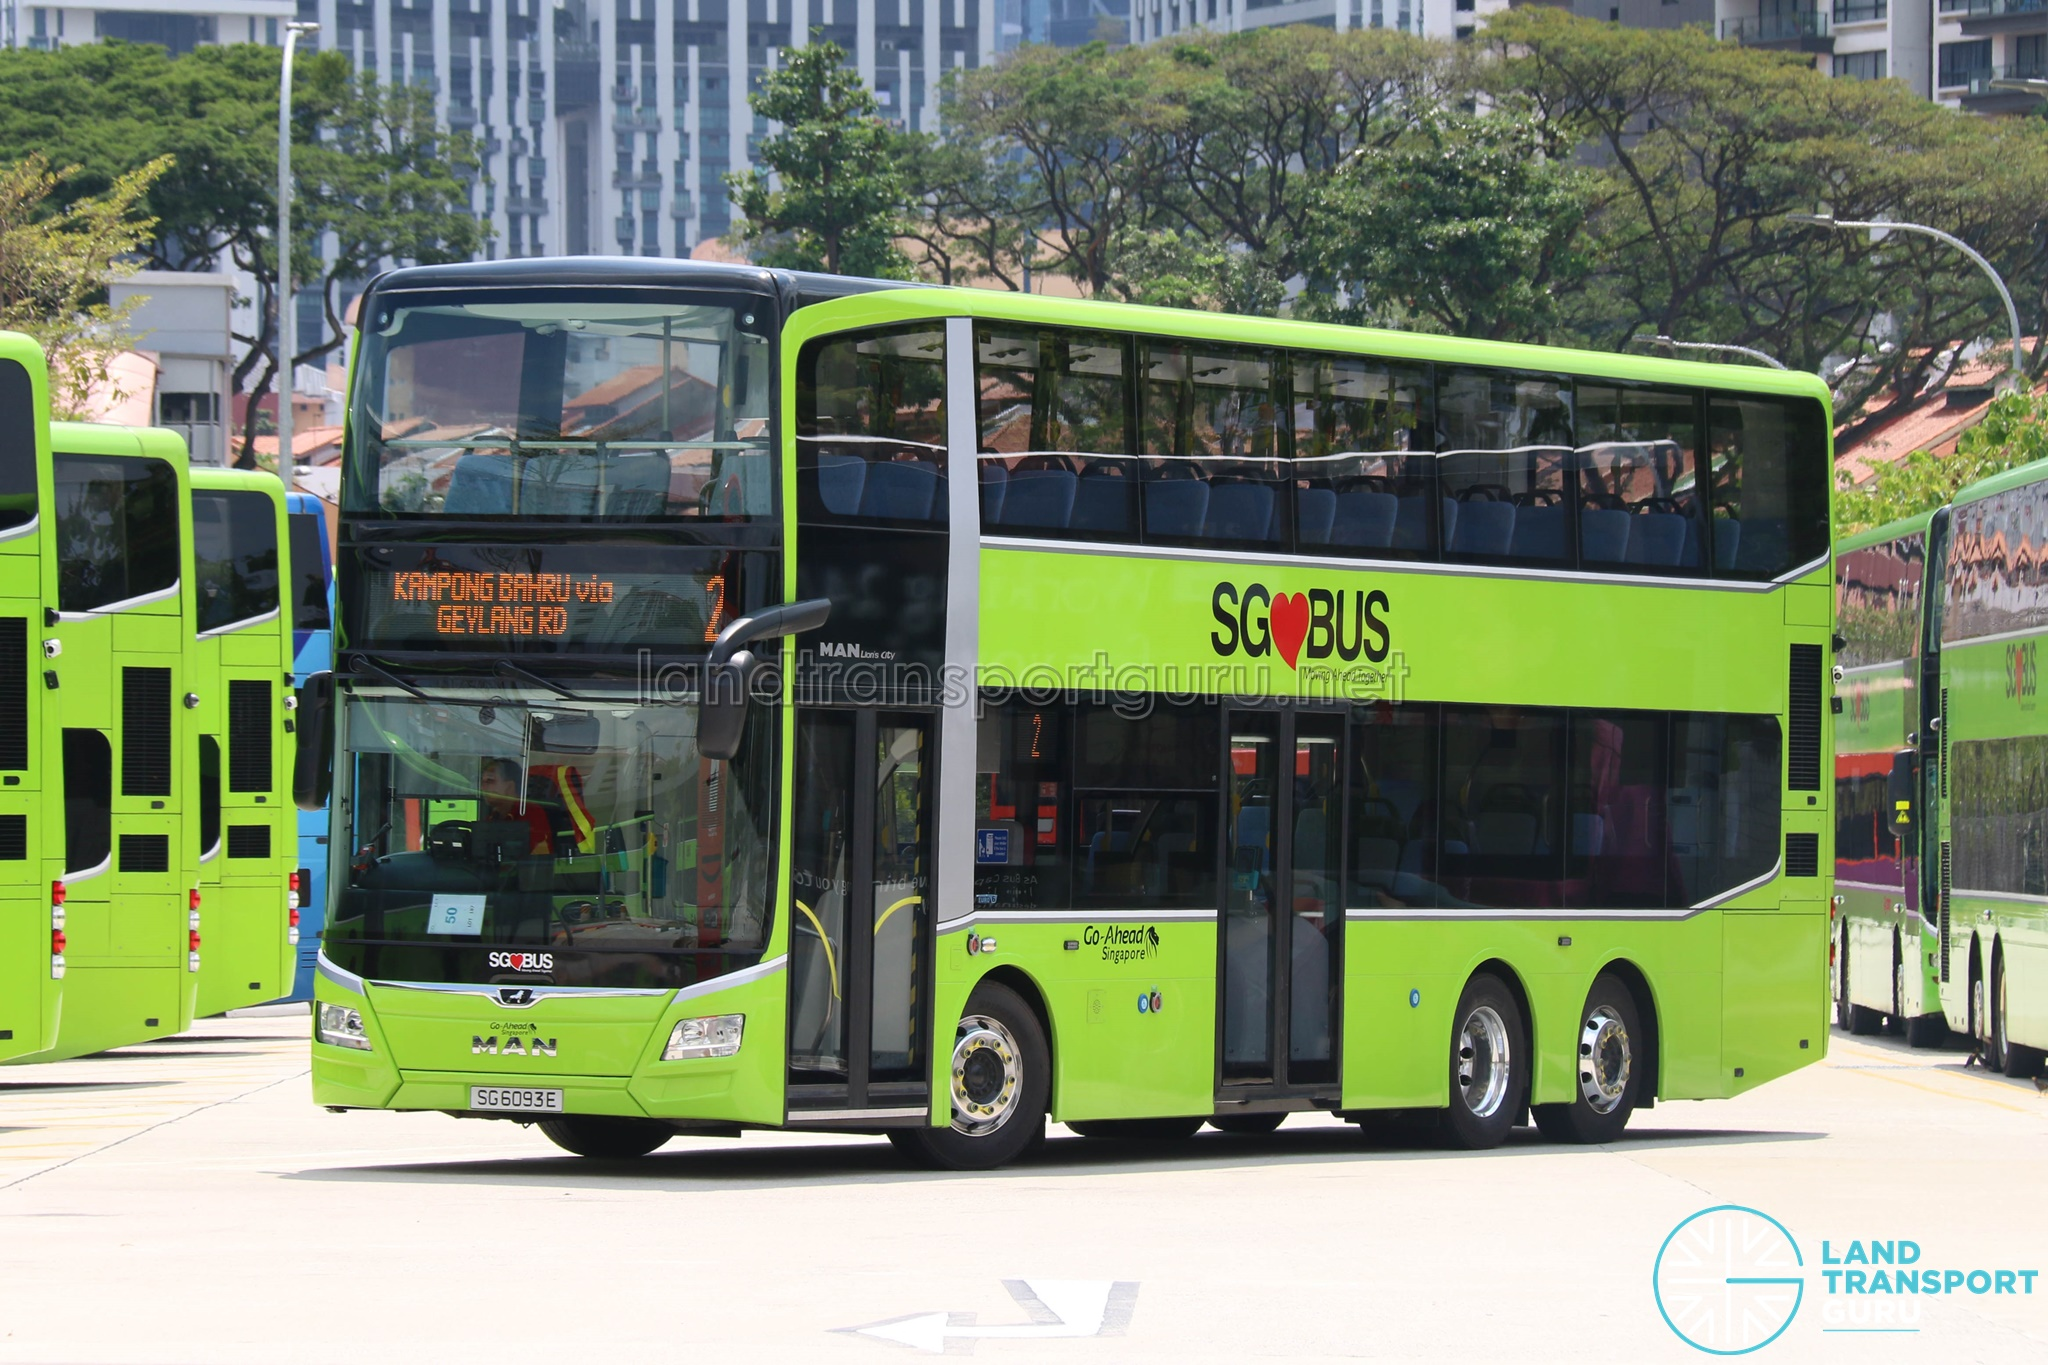 Train Services - Singapore | Land Transport Guru